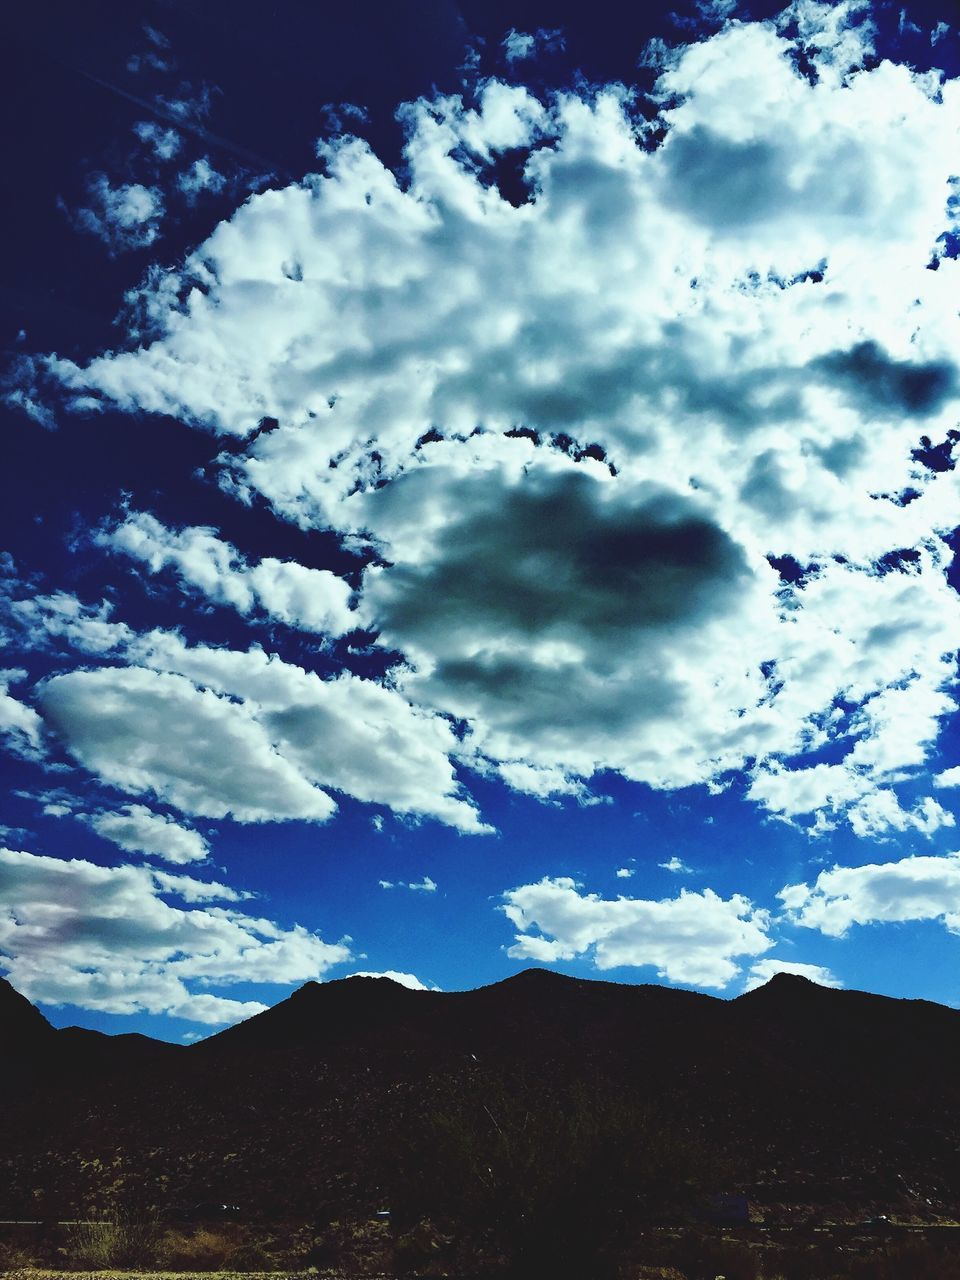 sky, cloud - sky, nature, beauty in nature, scenics, tranquility, mountain, no people, tranquil scene, day, outdoors, low angle view, landscape